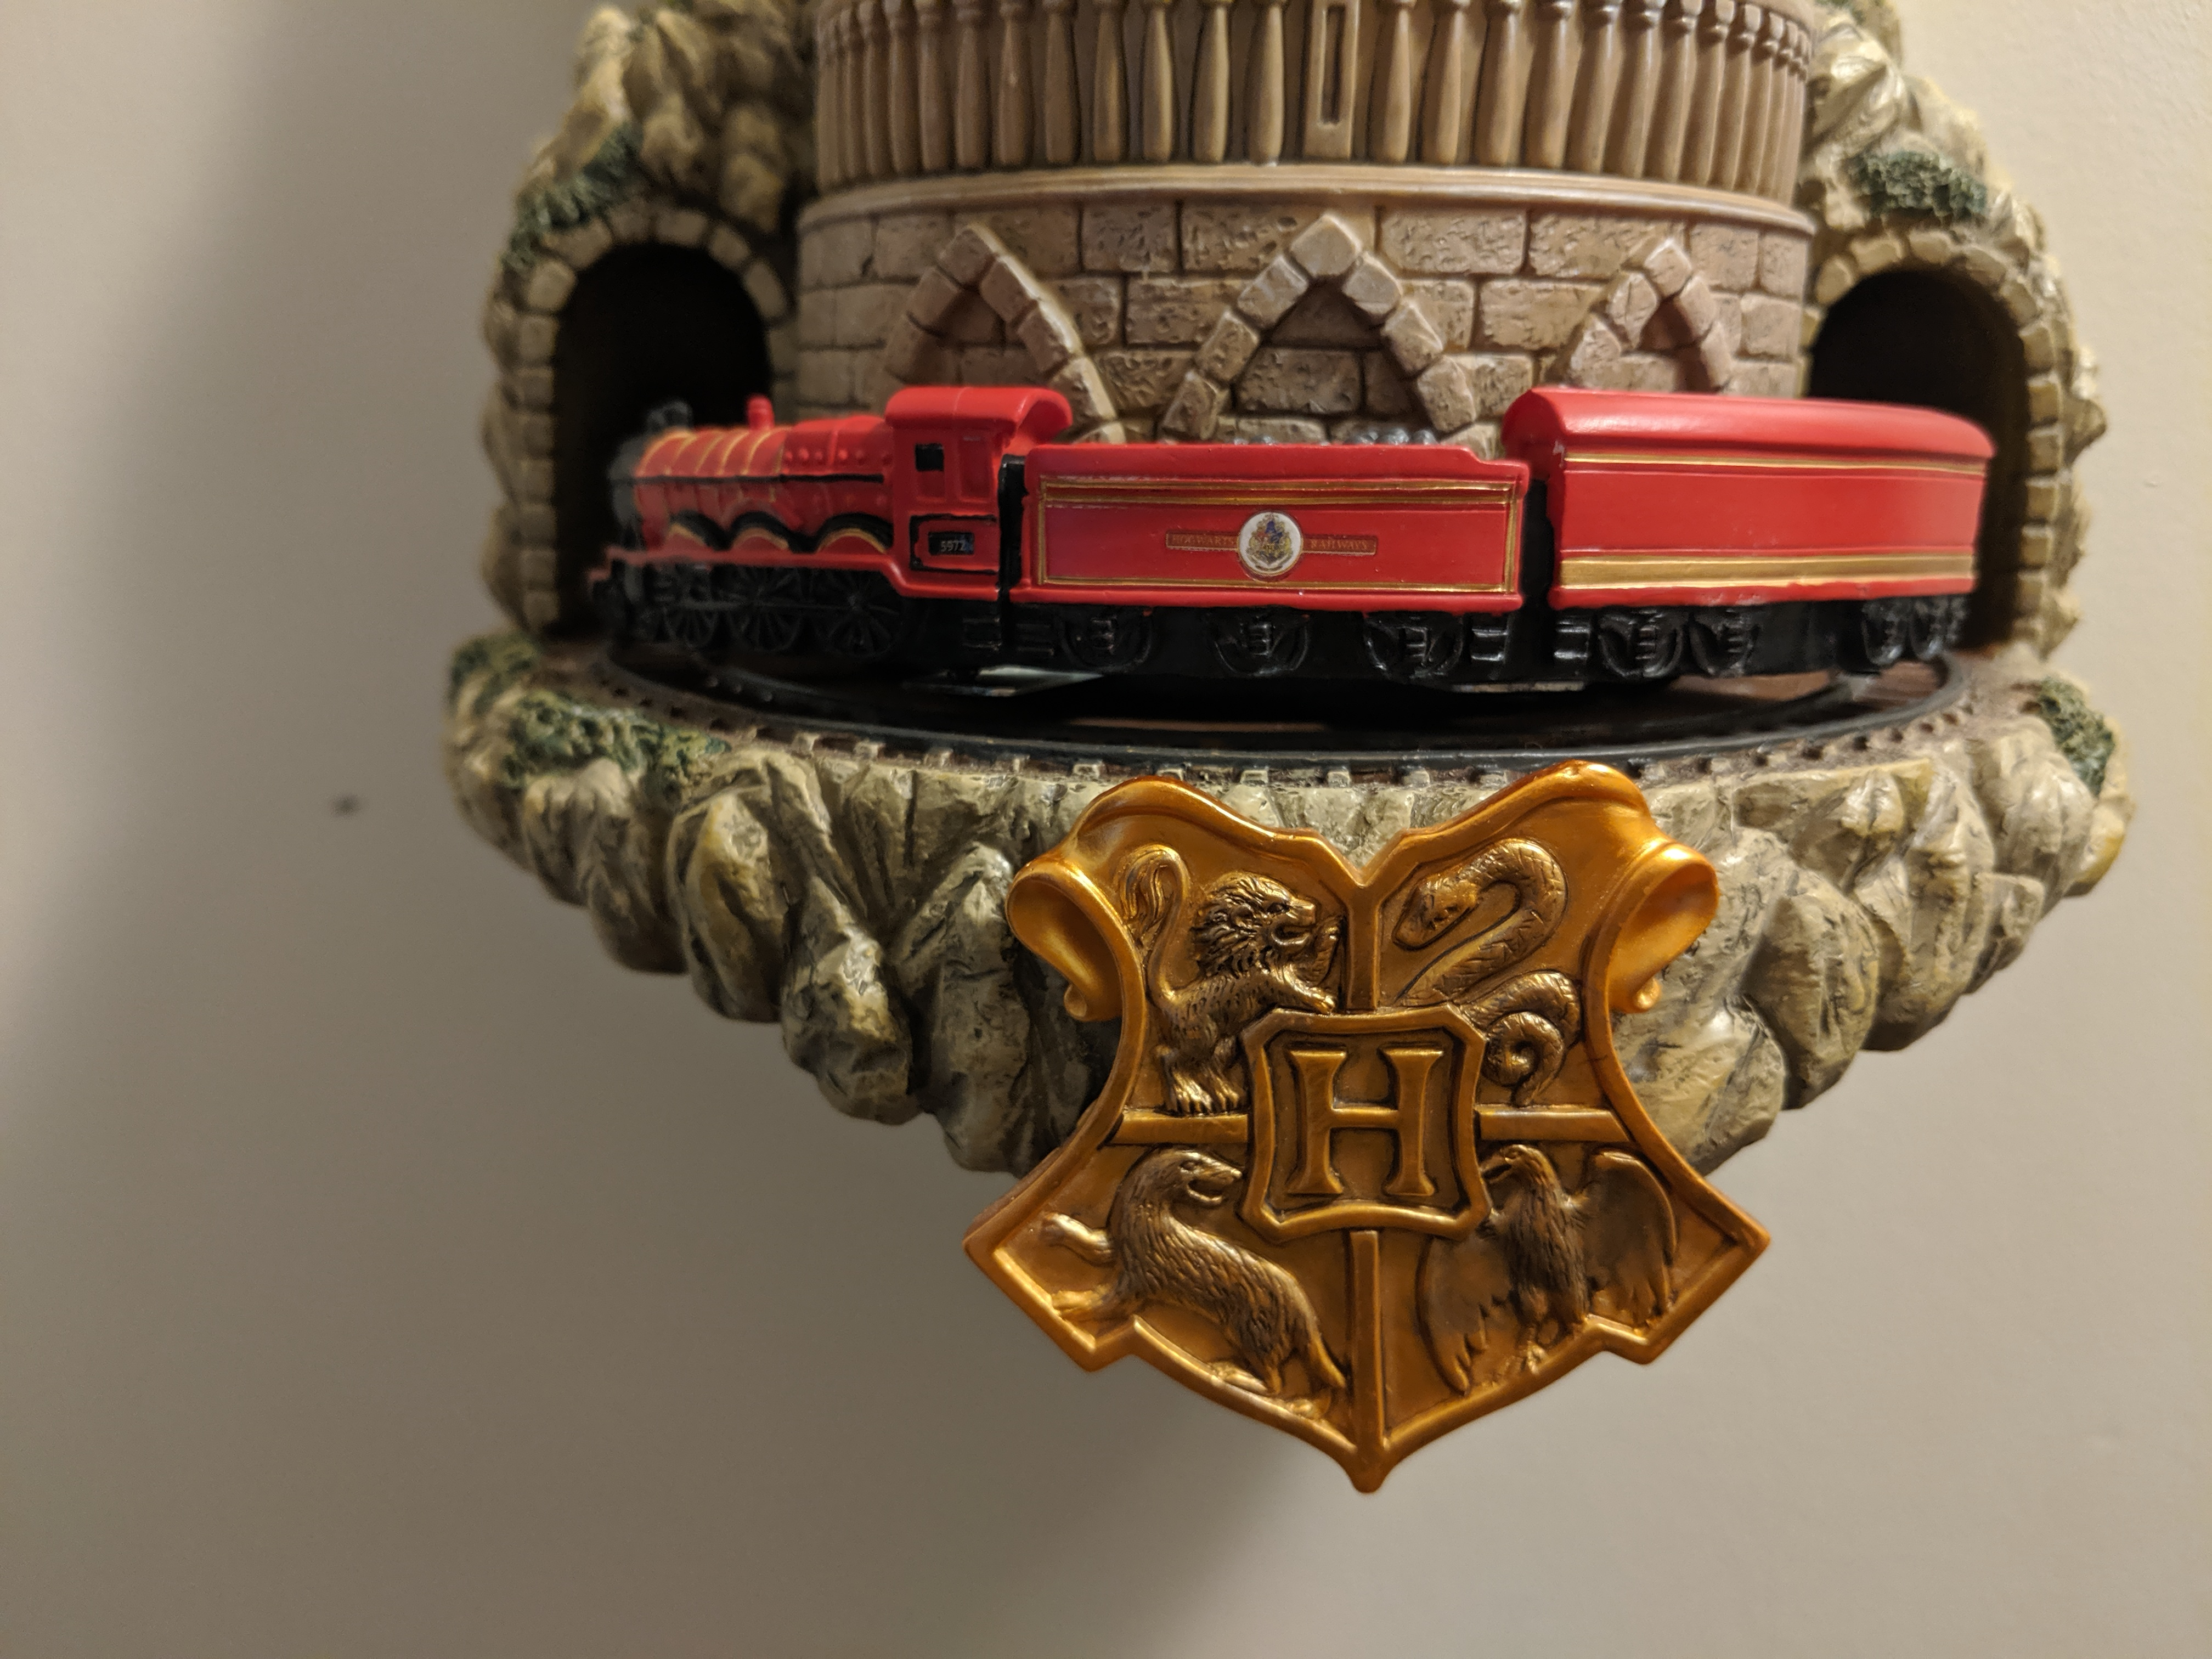 The Hogwarts Express and crest on the wall clock